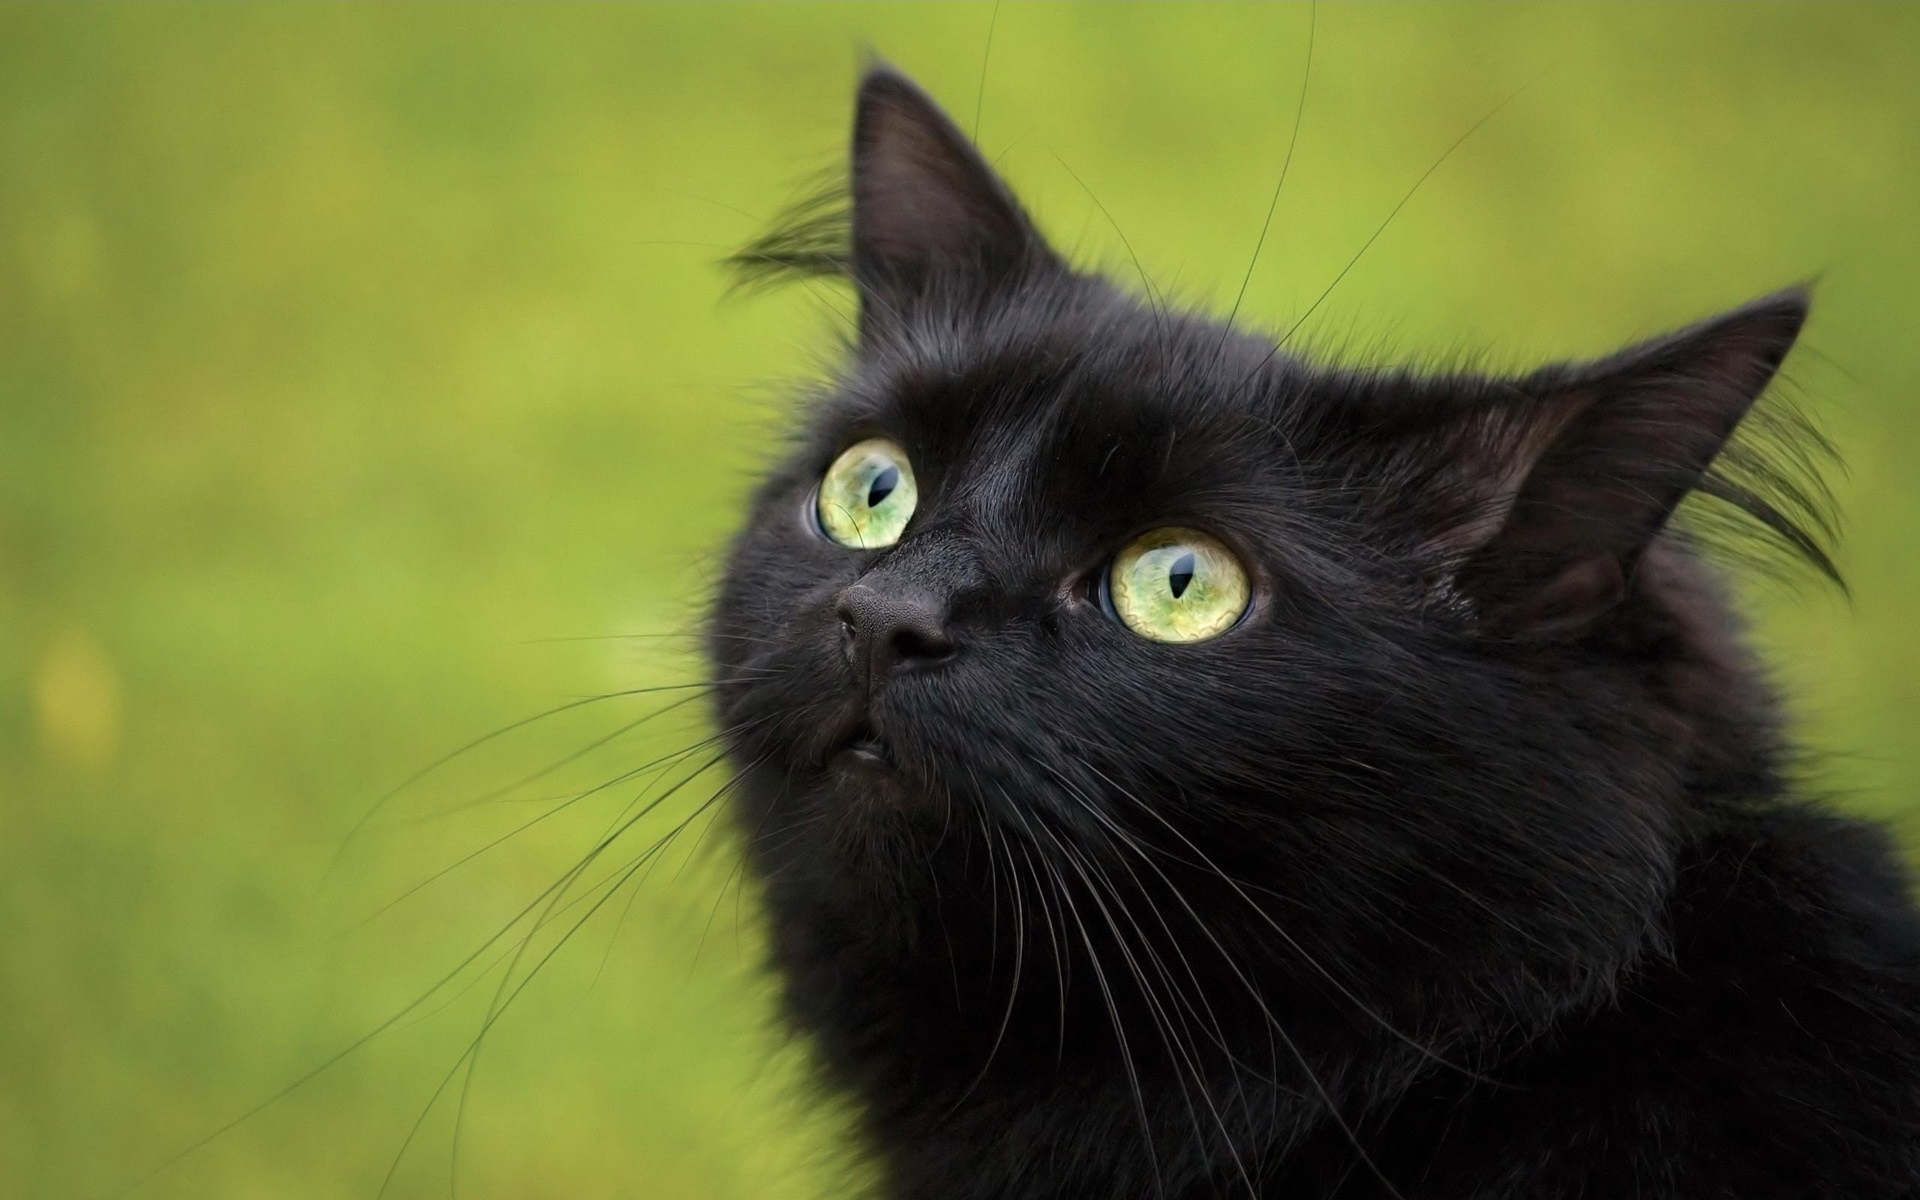 49475 download wallpaper Animals, Cats screensavers and pictures for free